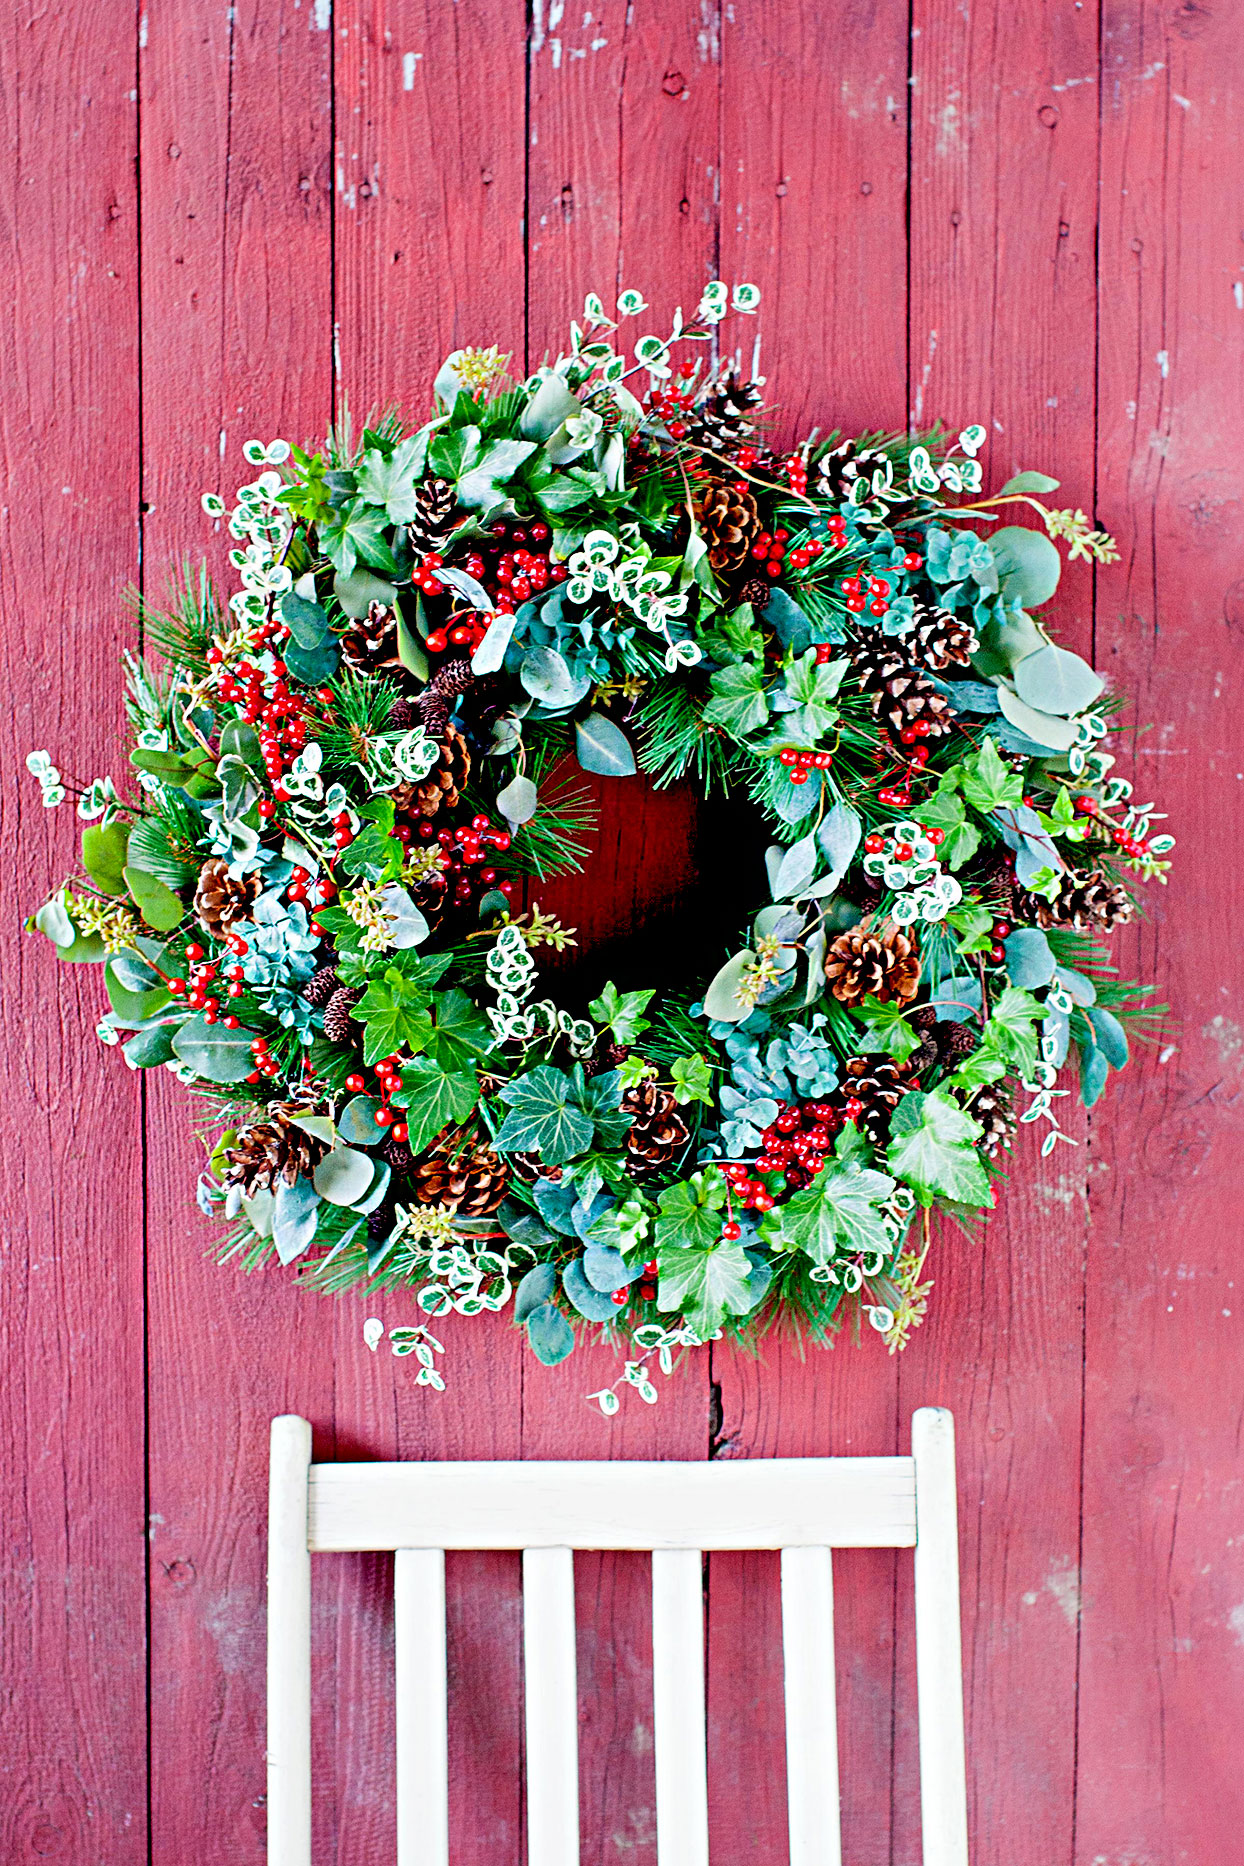 Wreath made with leaves, pinecones, and berries